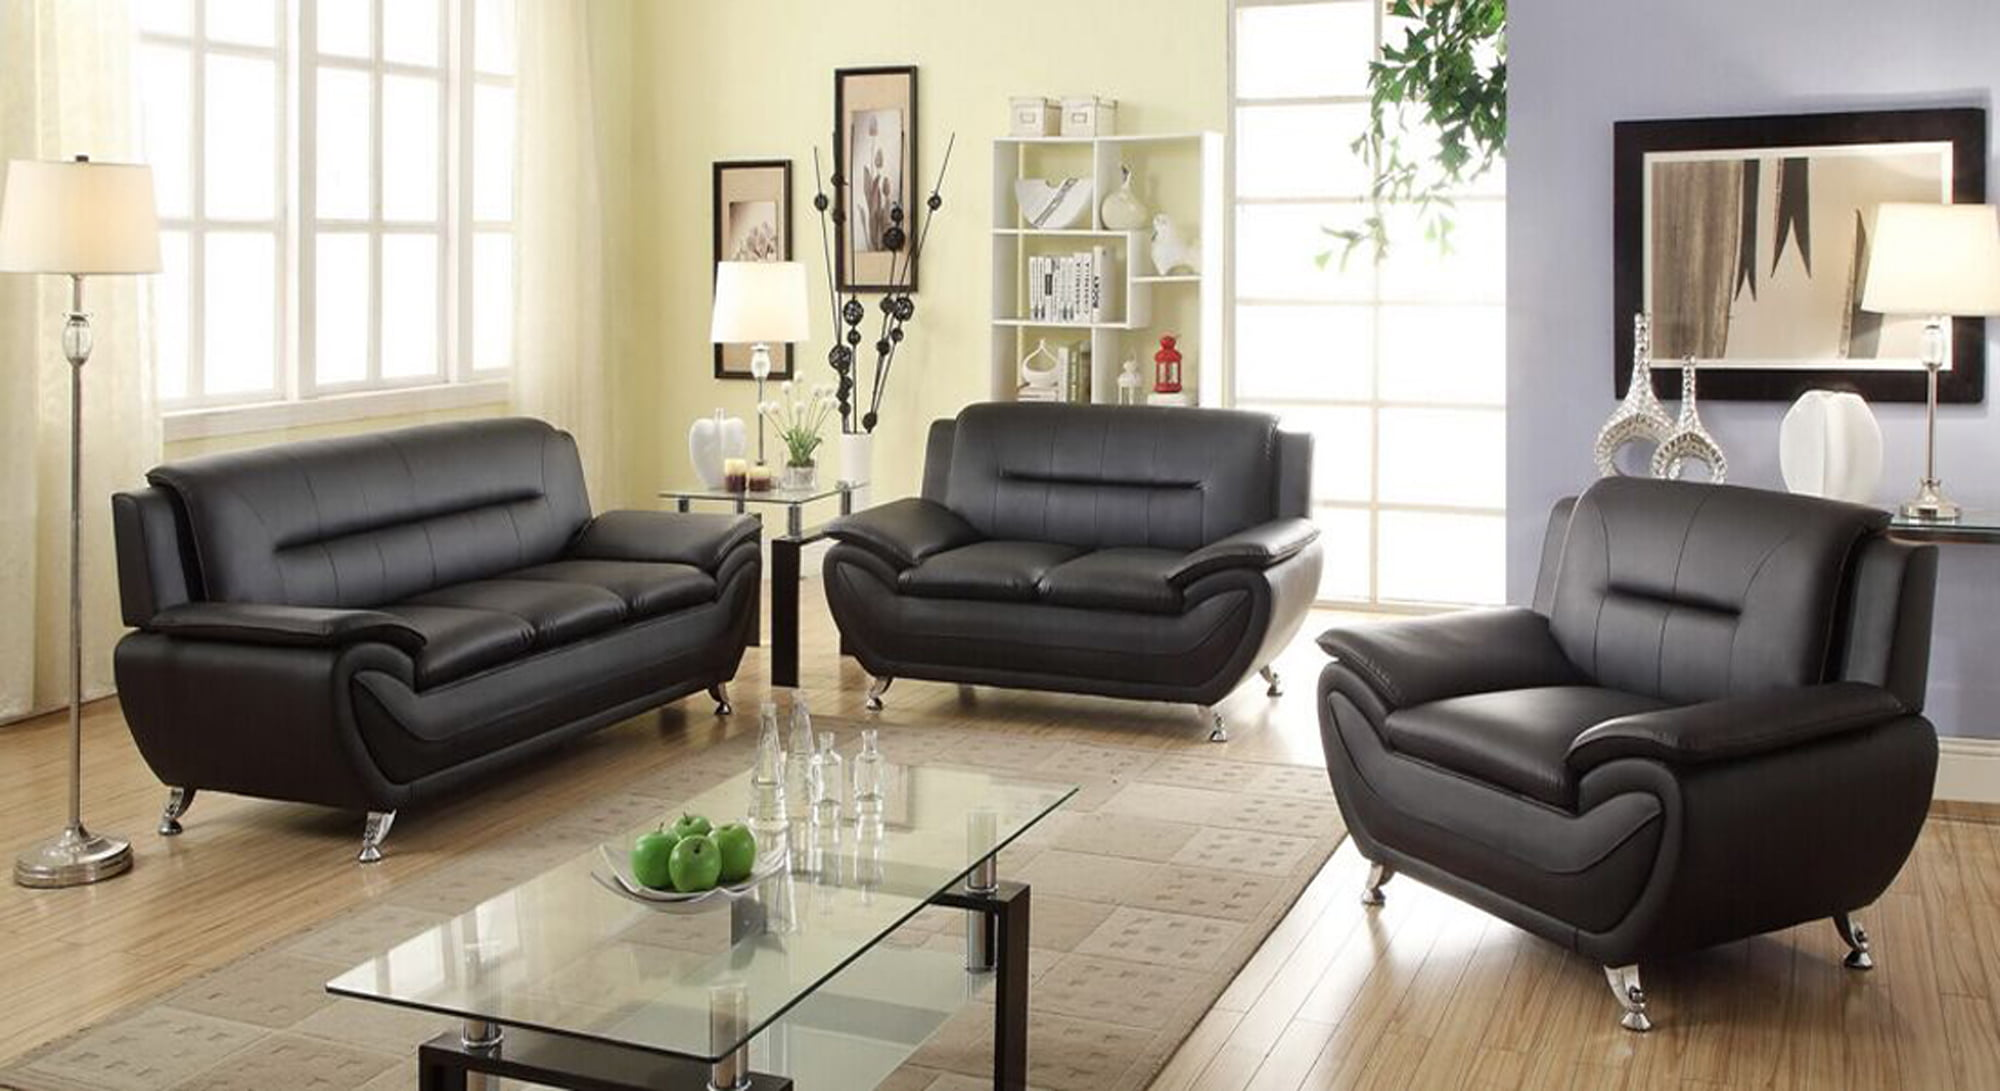 Norton 3 Pc Black Faux Leather Modern Living Room Sofa Set   Walmart.com